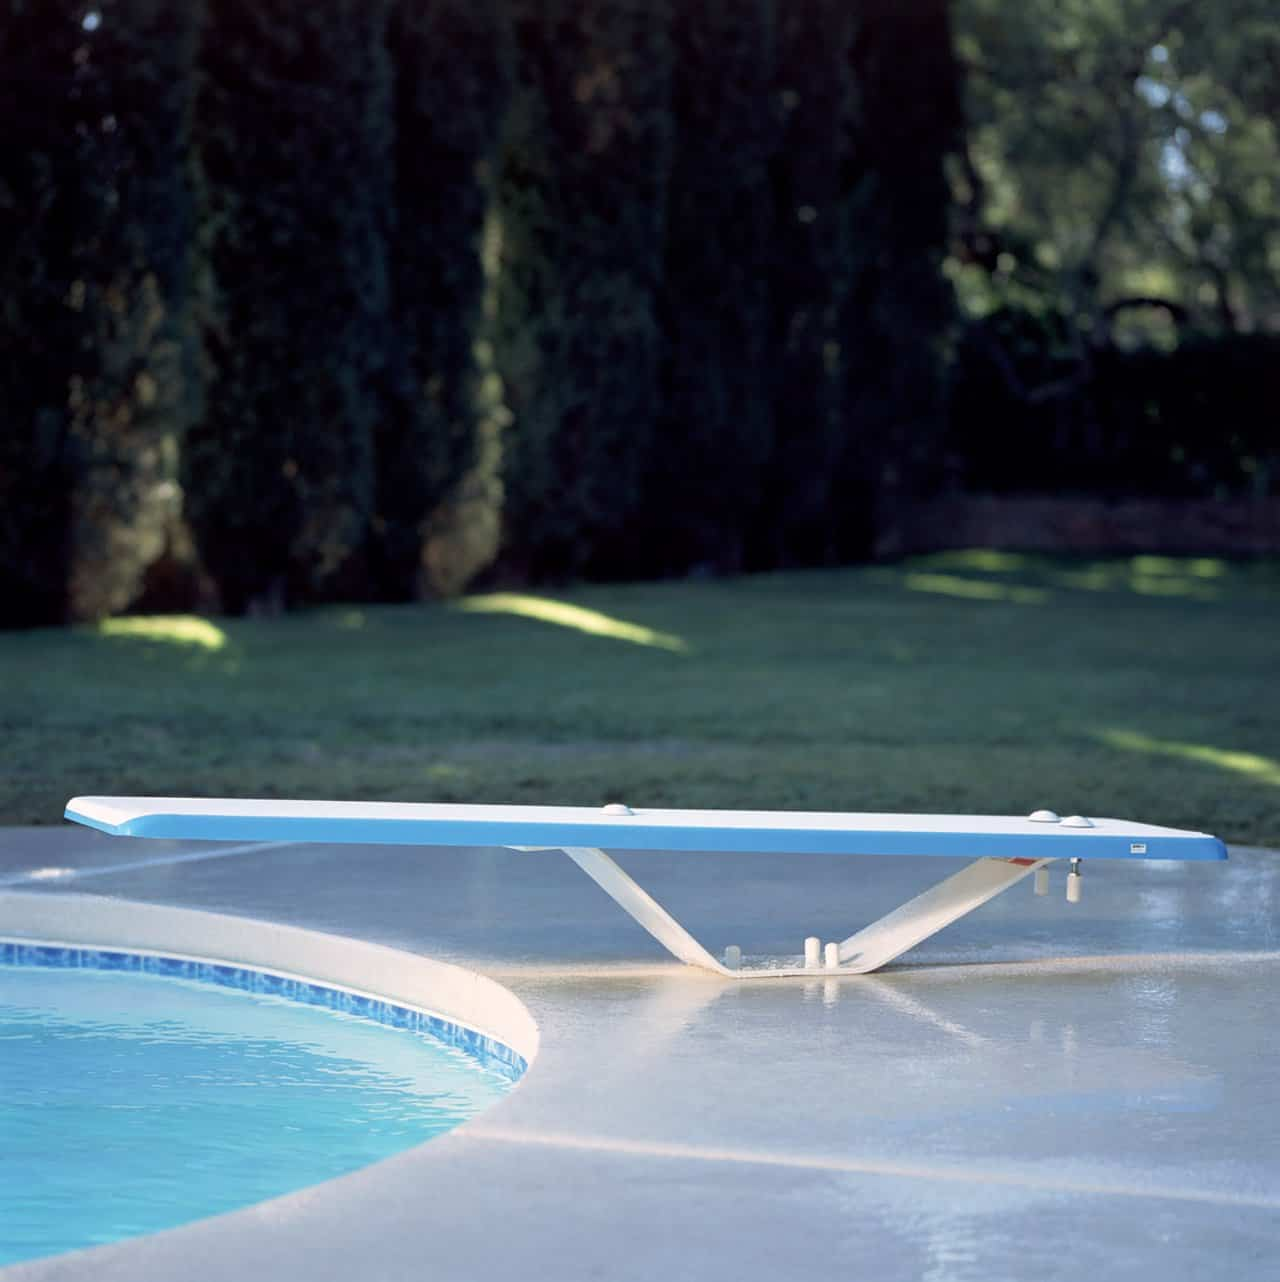 swimming pool diving boards